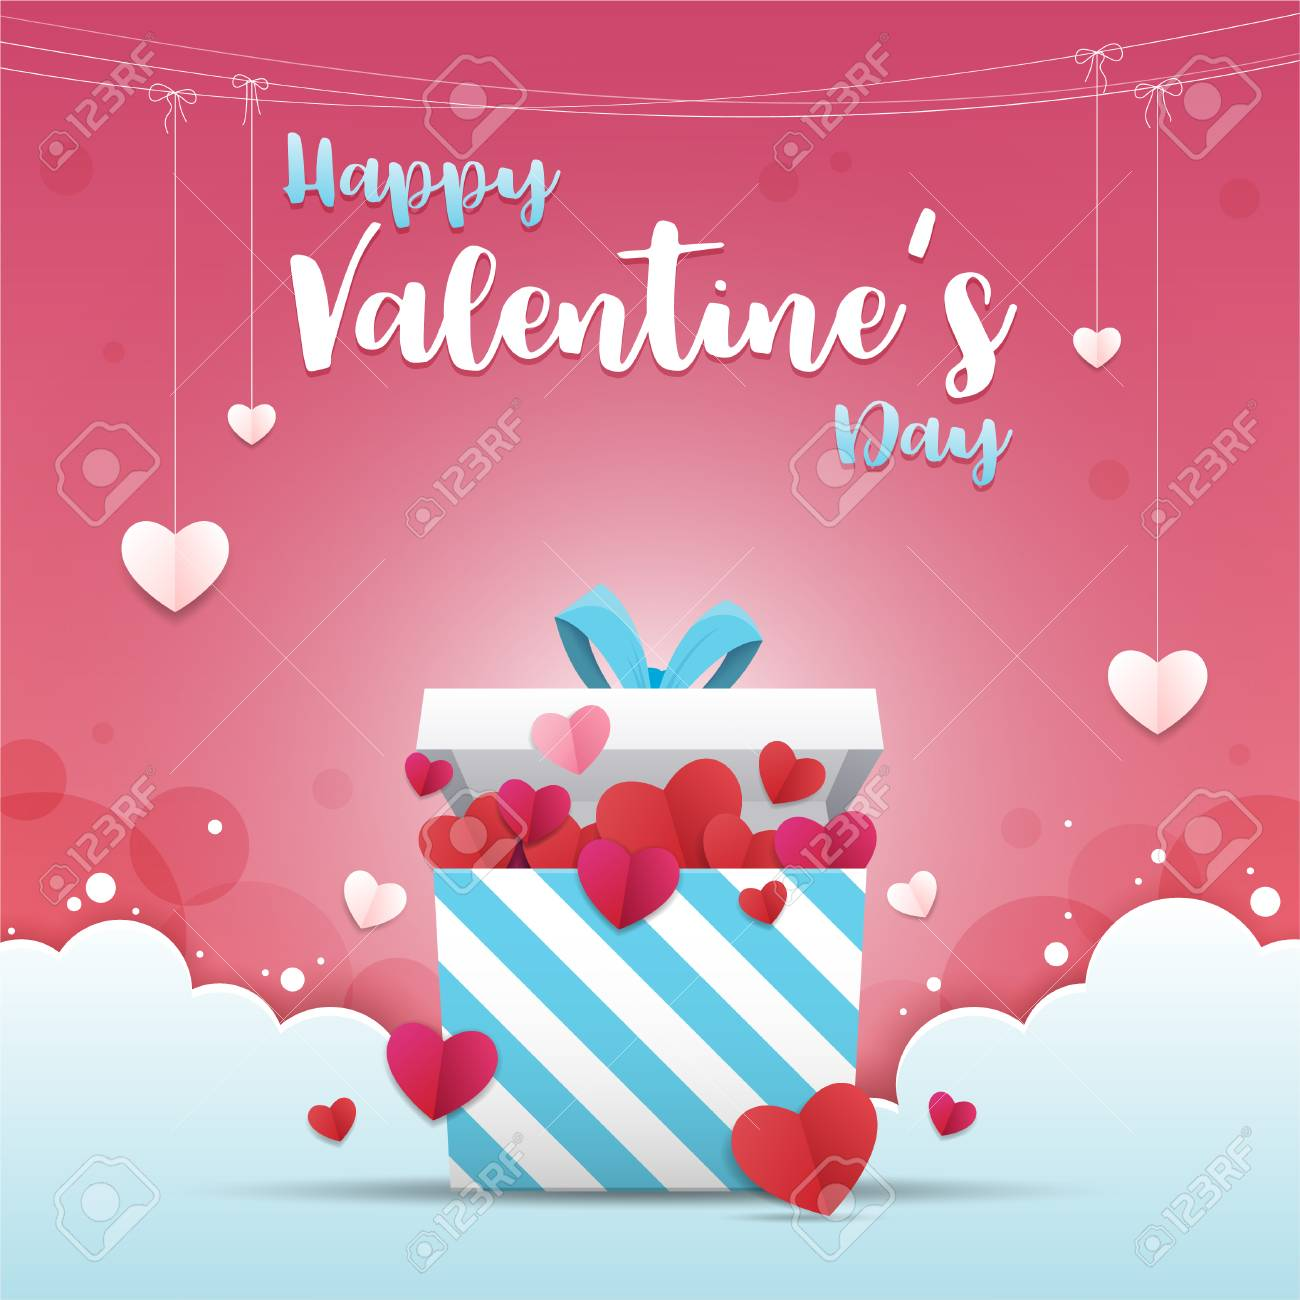 Greeting card of valentines day a gift box with many heart shaped greeting card of valentines day a gift box with many heart shaped paper art m4hsunfo